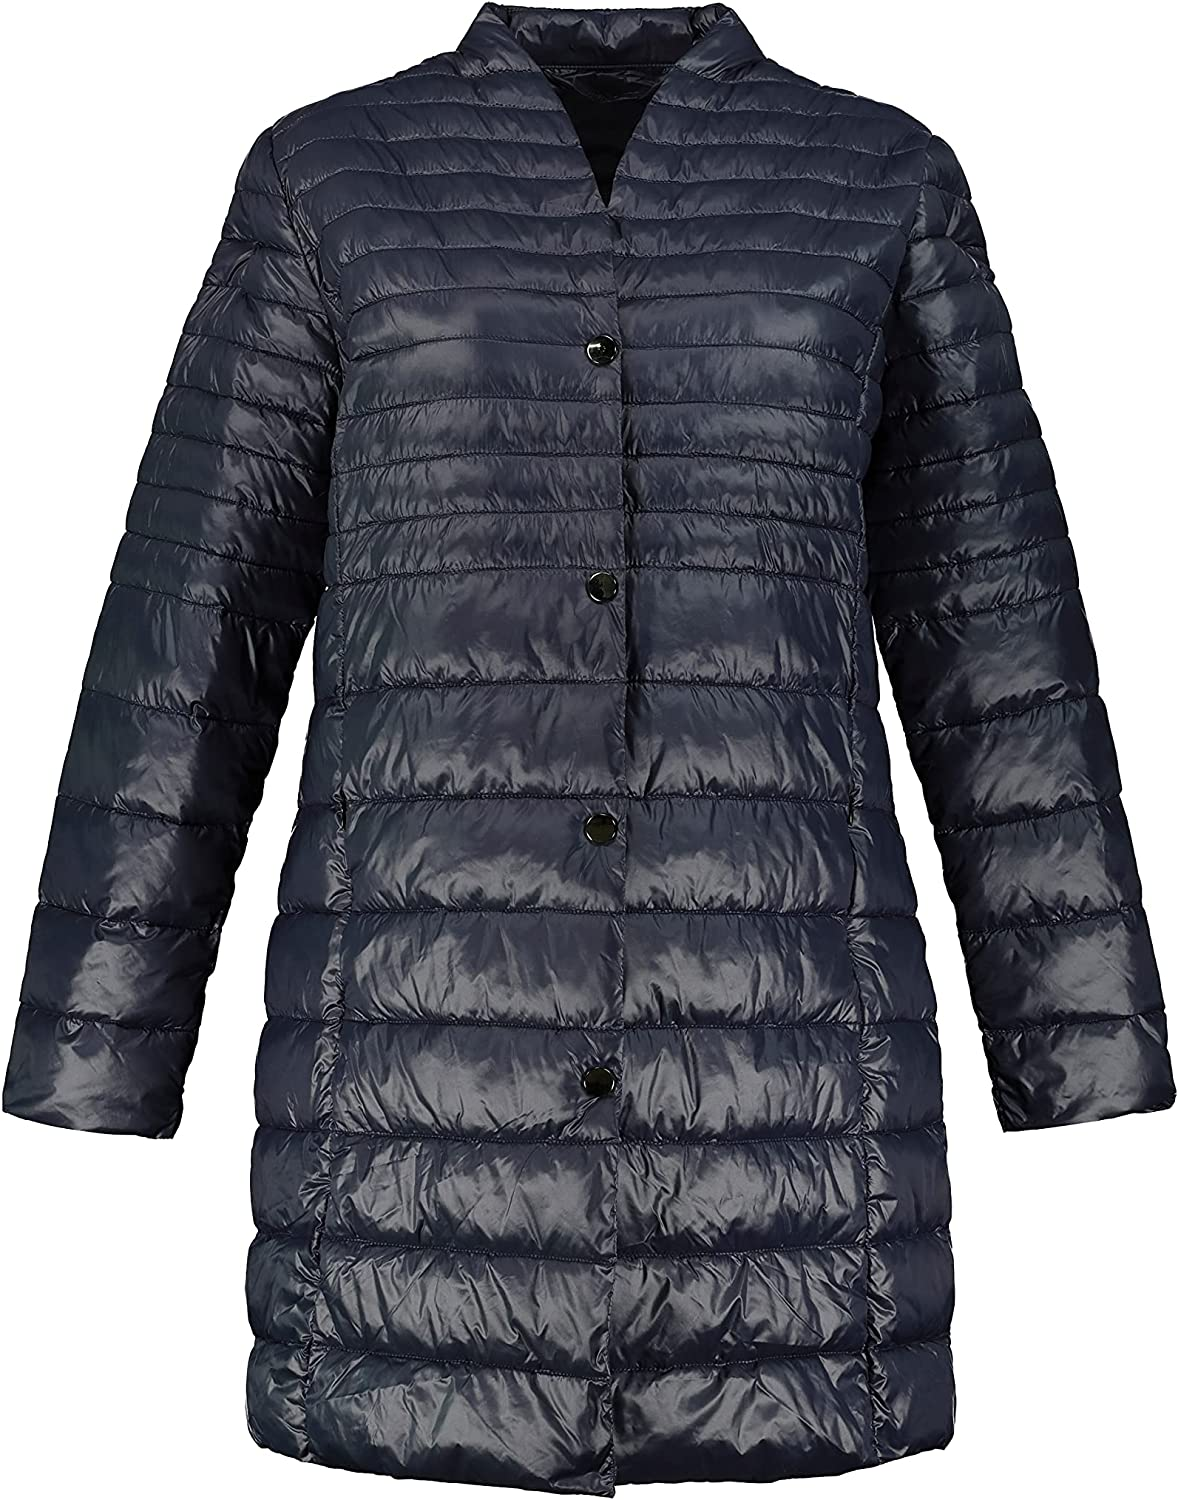 Ulla Popken Womenswear Plus Size Curvy Oversize Causal Quilted Snap Front Fully Lined Jacket 781751